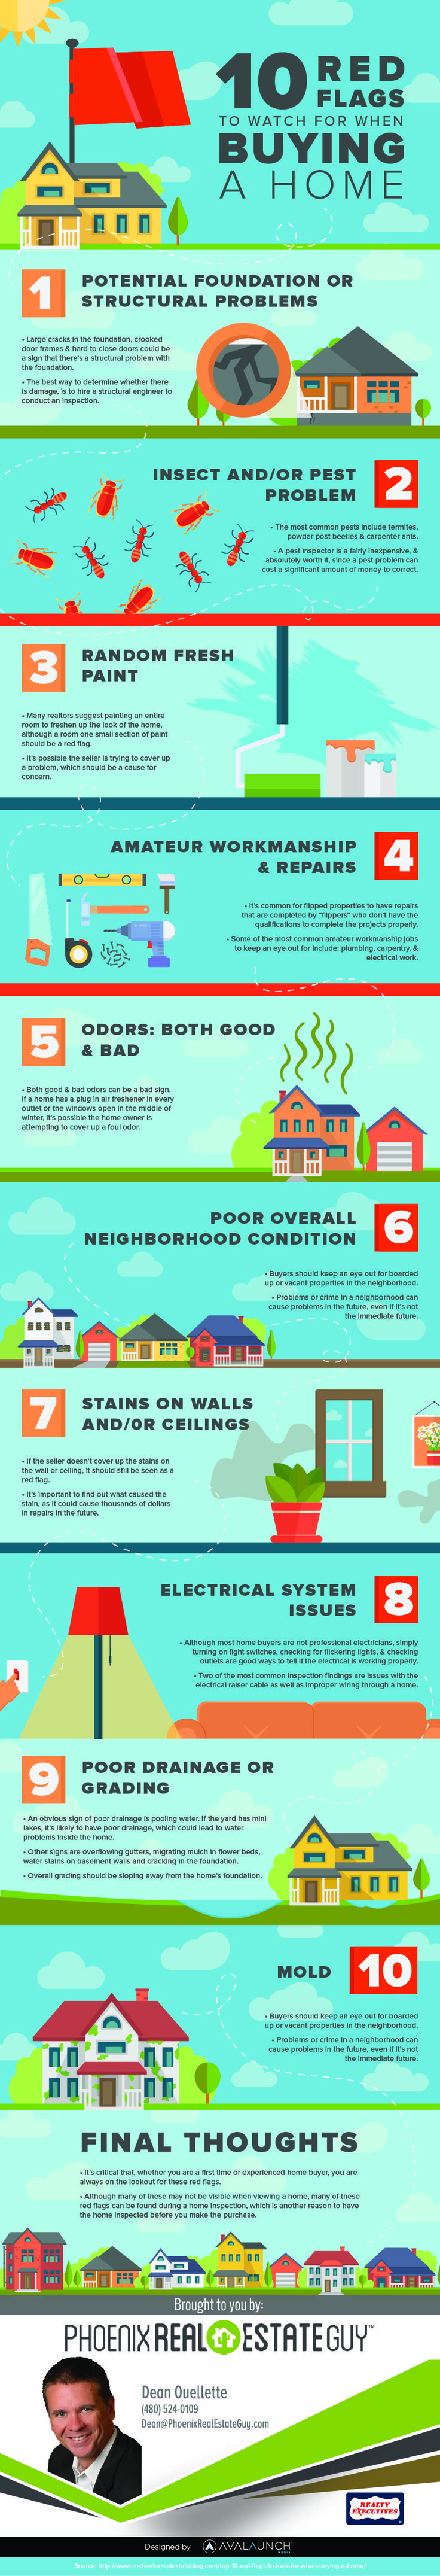 Lovely Great Tips From A Phoenix Area Realtor! Phoenix Home Shopping: What To Look  For When Buying A House With Infographic